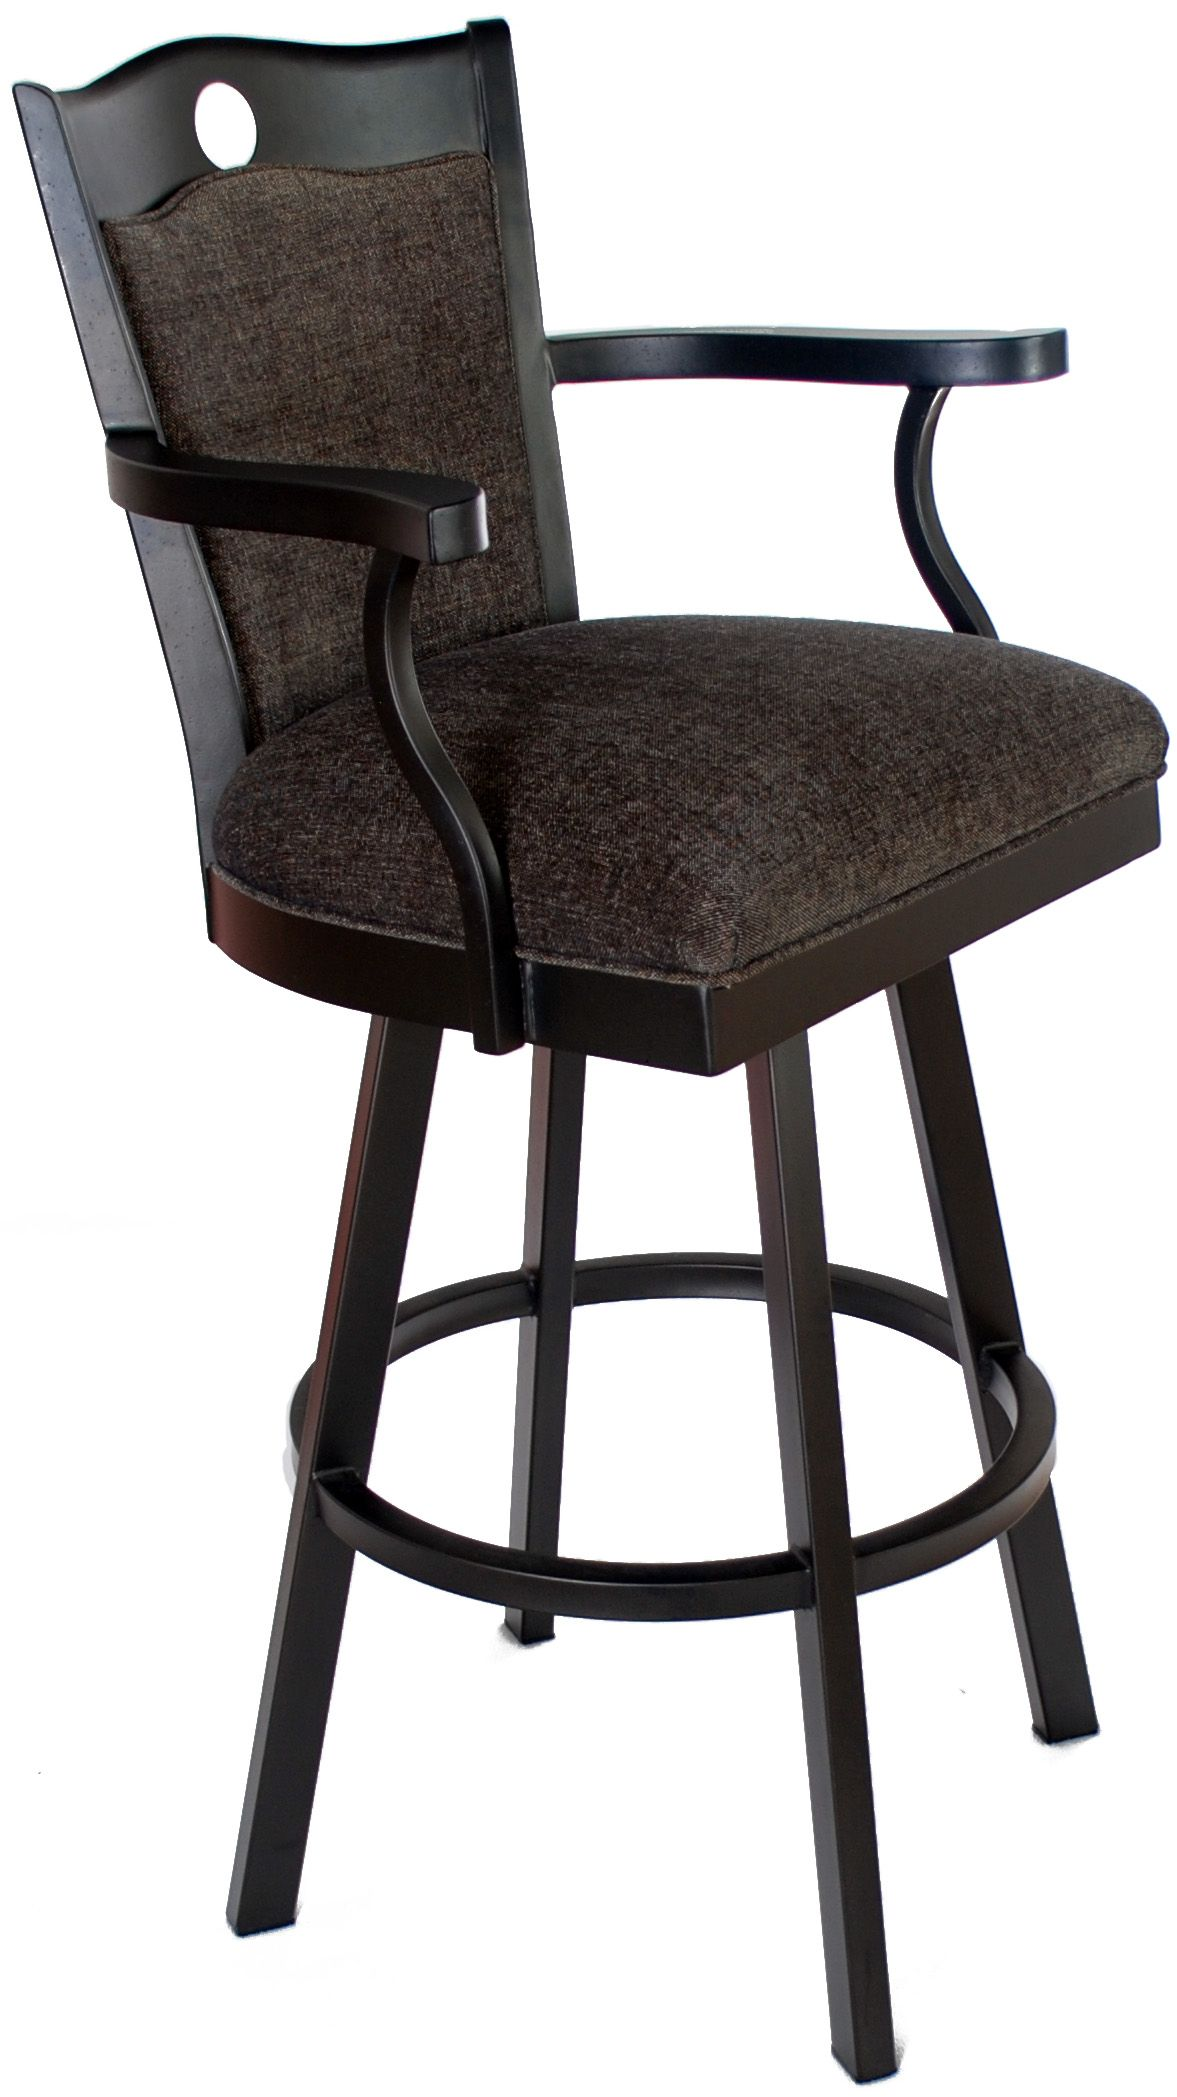 Surprising Clayton Bar Stool Available In Your Choice Of Fabrics And Ibusinesslaw Wood Chair Design Ideas Ibusinesslaworg